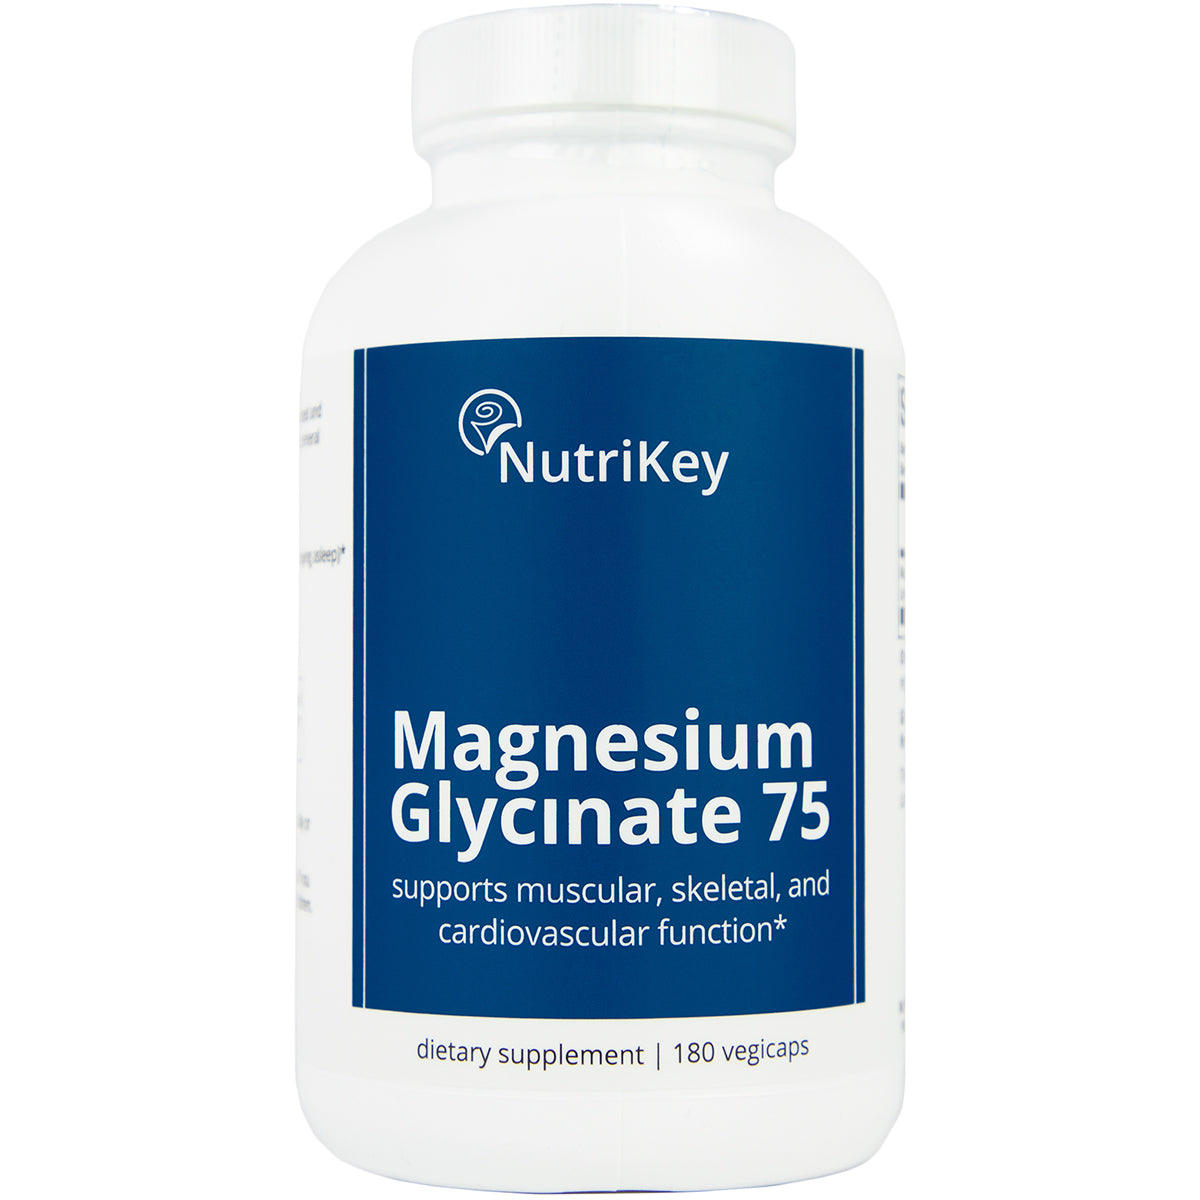 MAGNESIUM GLYCINATE 75, 180 vegicaps